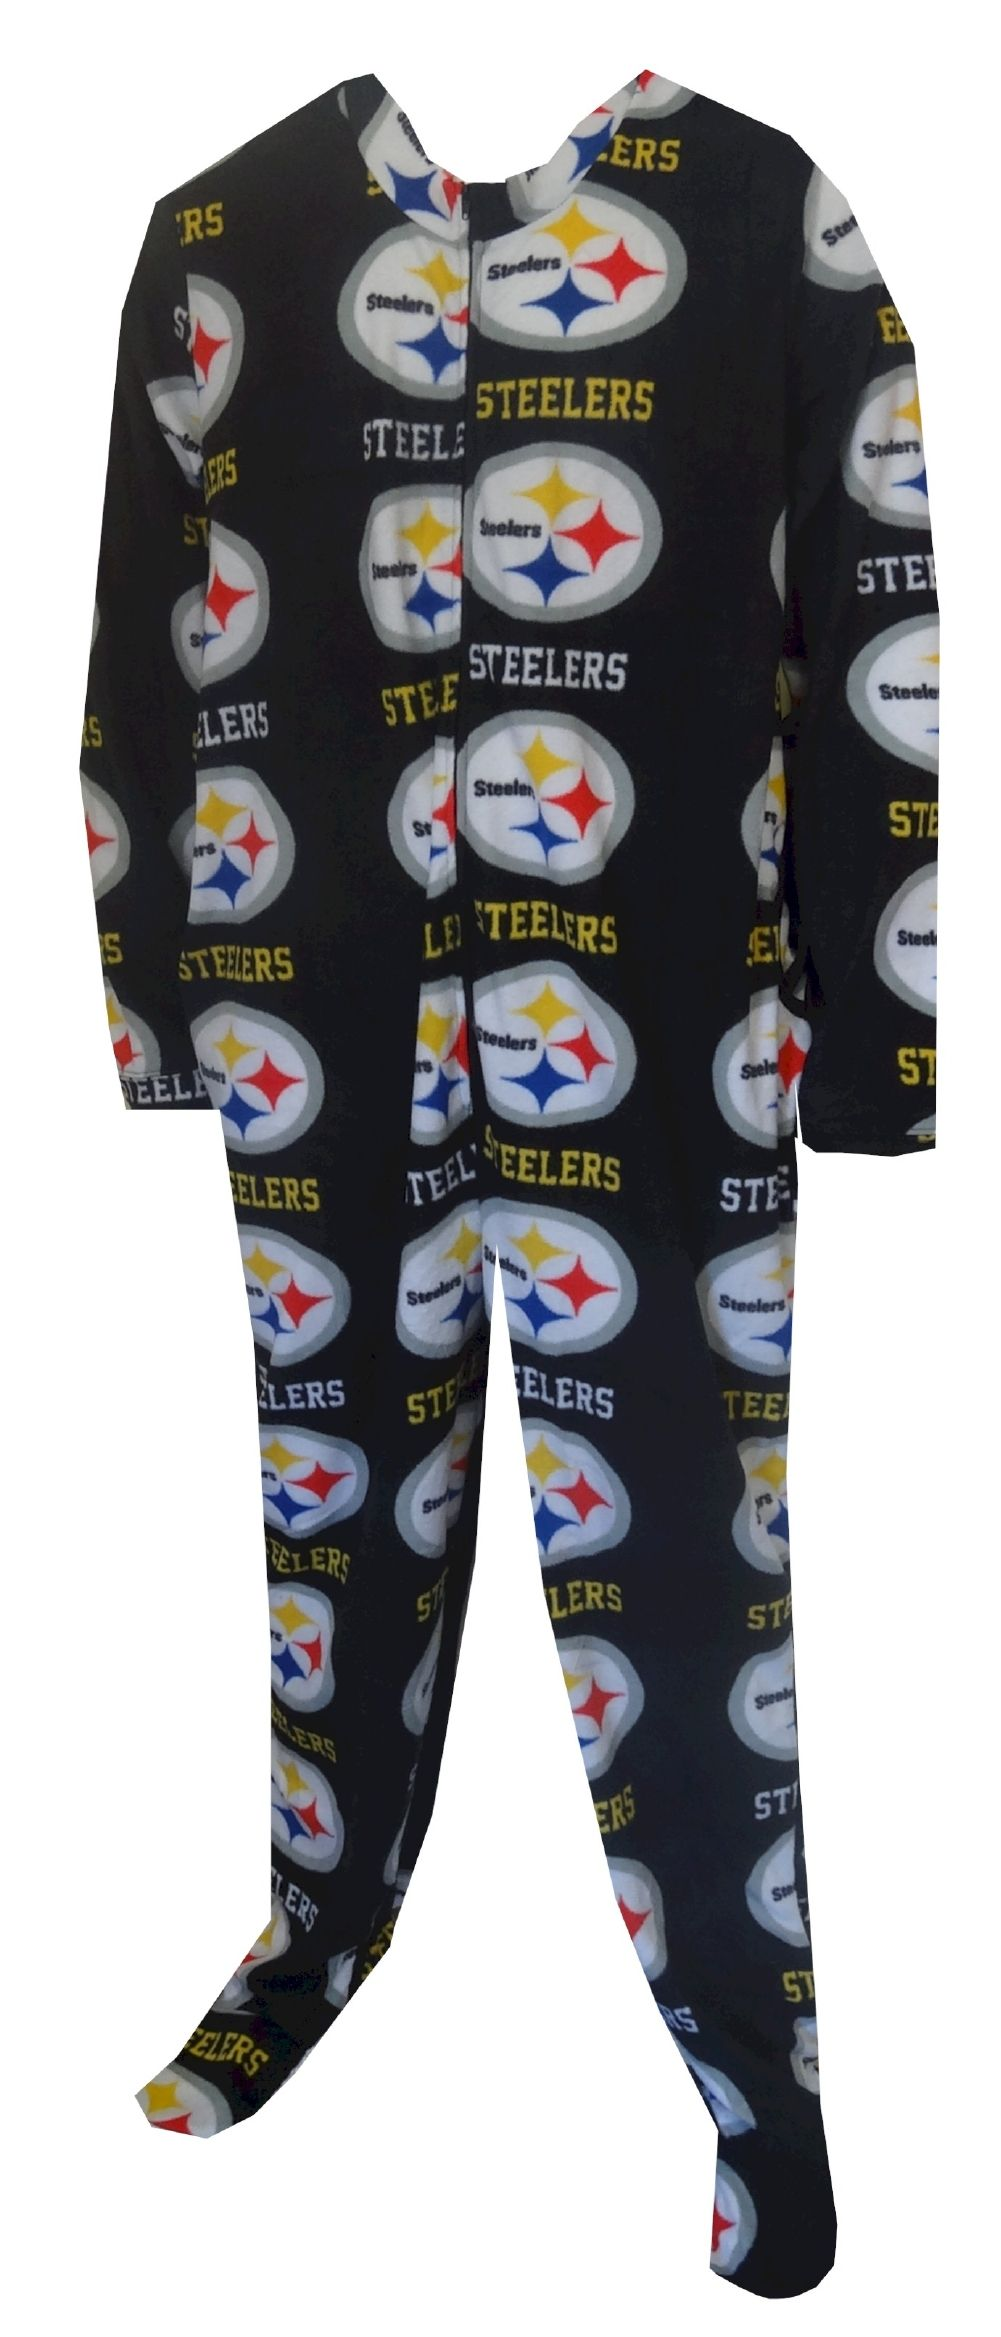 Pittsburgh Steelers Guys Onesie Footie Black Pajama Show your team spirit!  This cozy microfleece footie pajama for men features. 4fabb2d6e